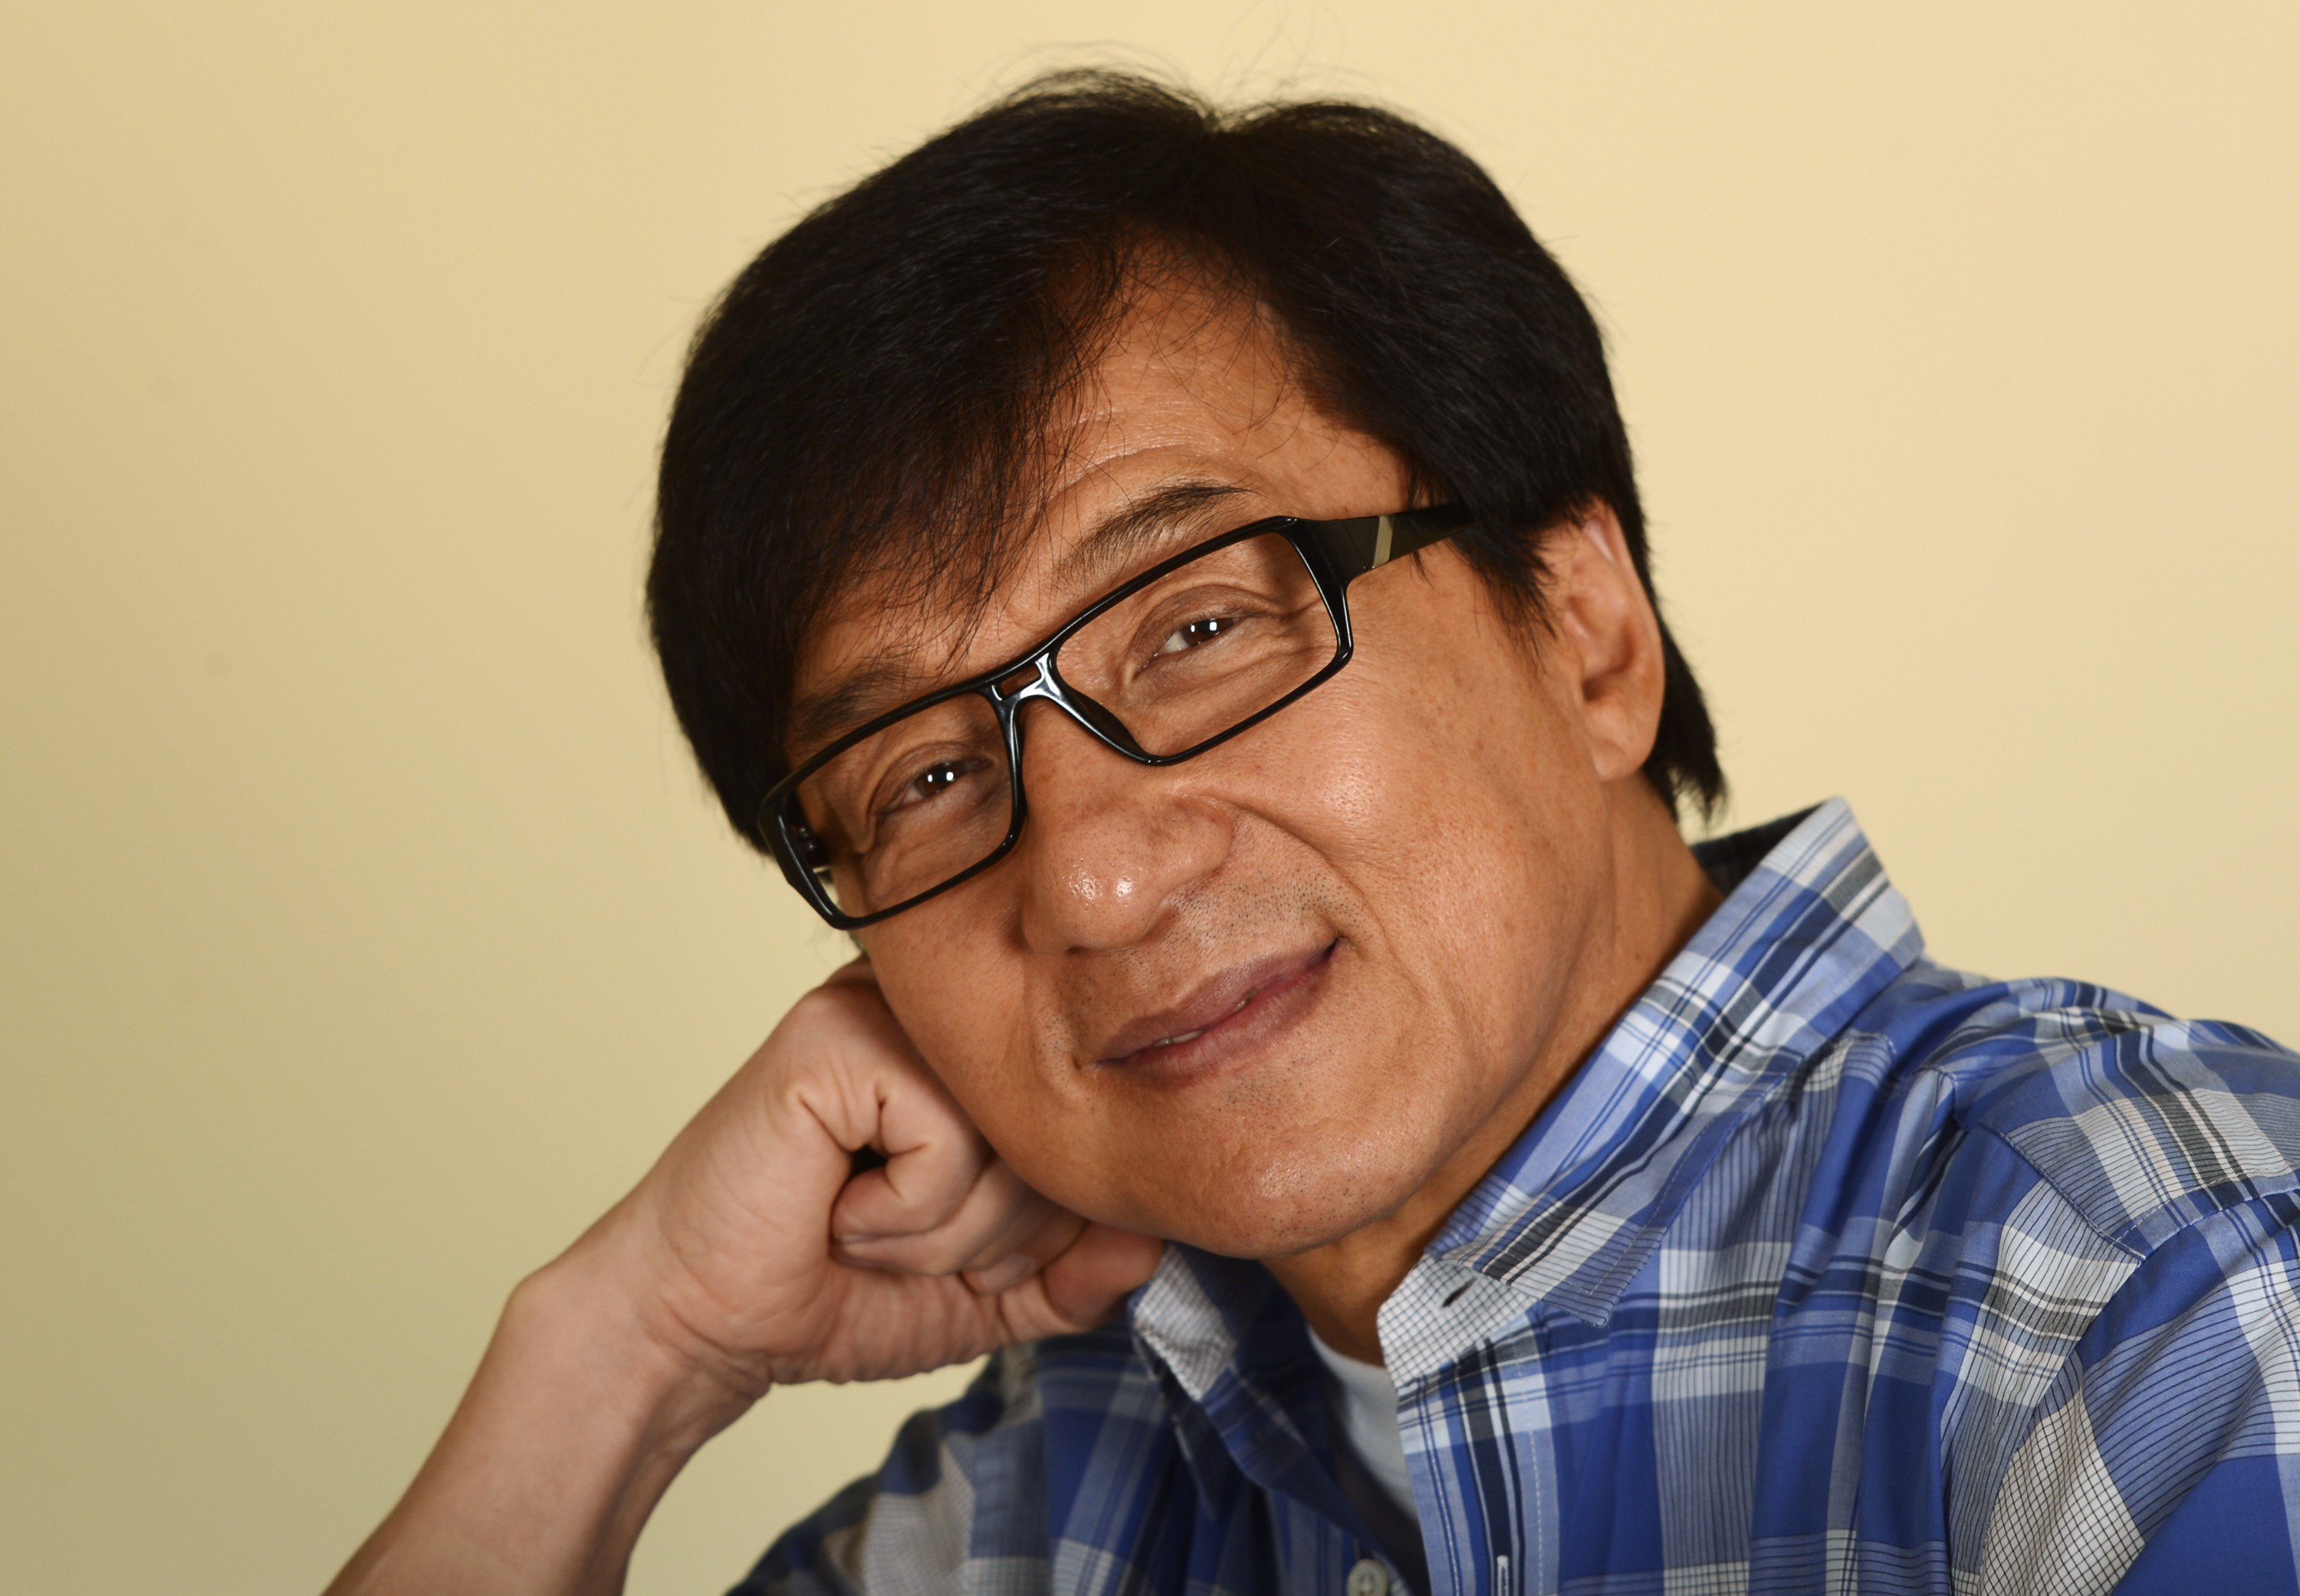 """Hong Kong actor Jackie Chan poses during a promotional event for his film """"Chinese Zodiac"""" in Beverly Hills, California October 16, 2013. Hong Kong martial arts film star Chan, 59, who declared last year at France's Cannes film festival that he was retiring from action films, now says that after more than a decade of contemplating quitting, he is going to let his body decide. As Chan starts to enter his twilight years he laments how Hollywood typecasting may force him to begin using a stunt double for his acrobatic scenes as he believes Hollywood studios would never cast him in dramatic roles. Picture taken October 16, 2013. To match story PEOPLE-JACKIECHAN/      REUTERS/Phil McCarten (UNITED STATES - Tags: ENTERTAINMENT PROFILE HEADSHOT)"""